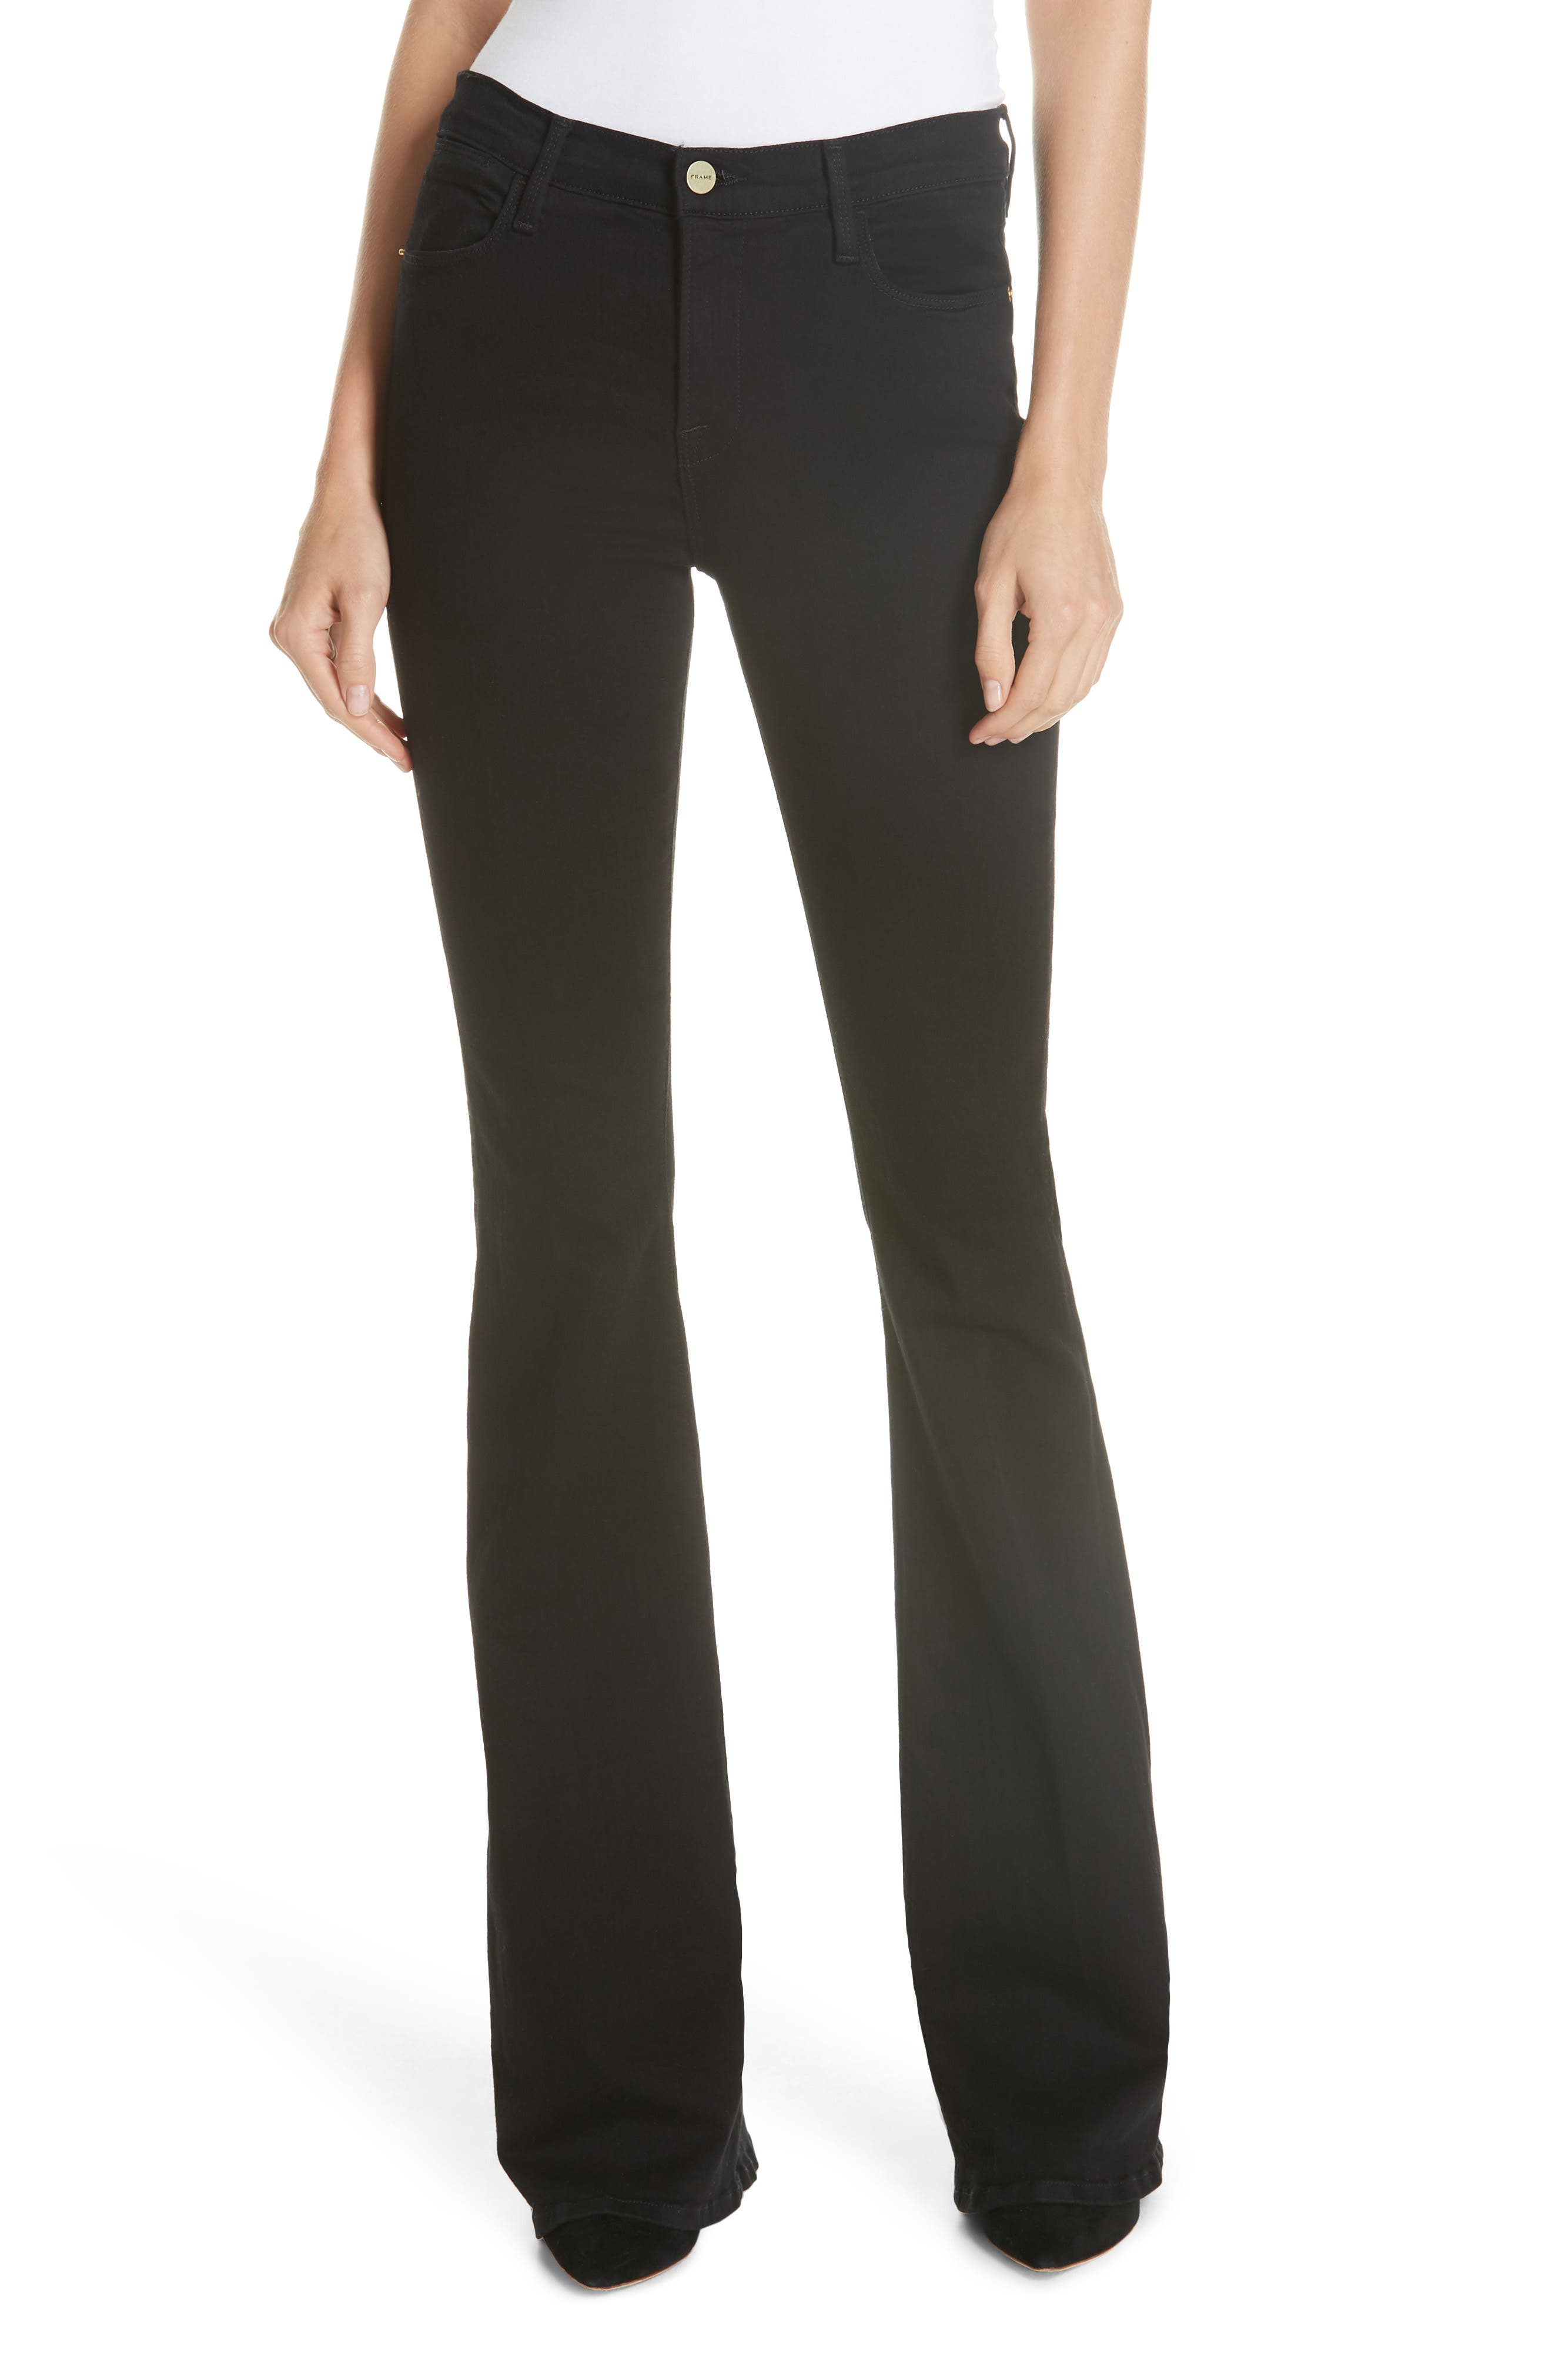 Le High Flare Jeans - Black Size 23